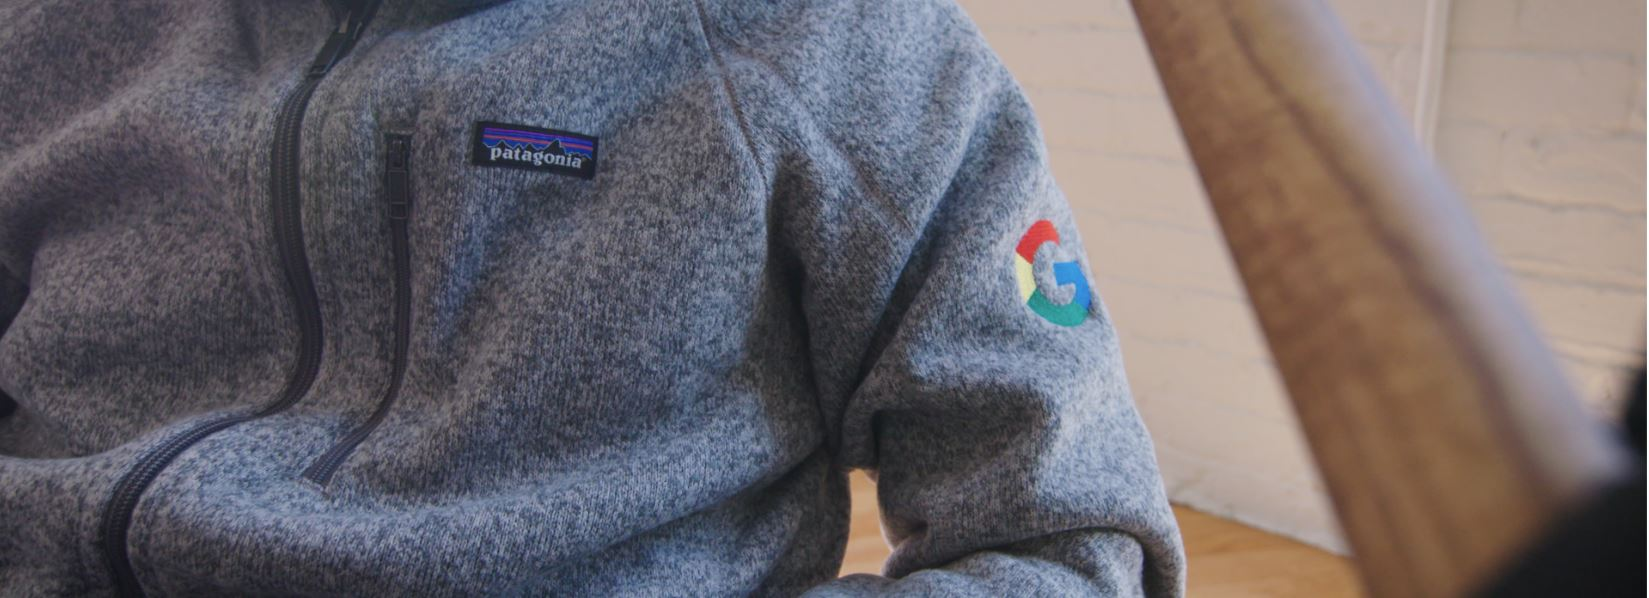 Custom Patagonia Better Sweater with Embroidered Google Logo